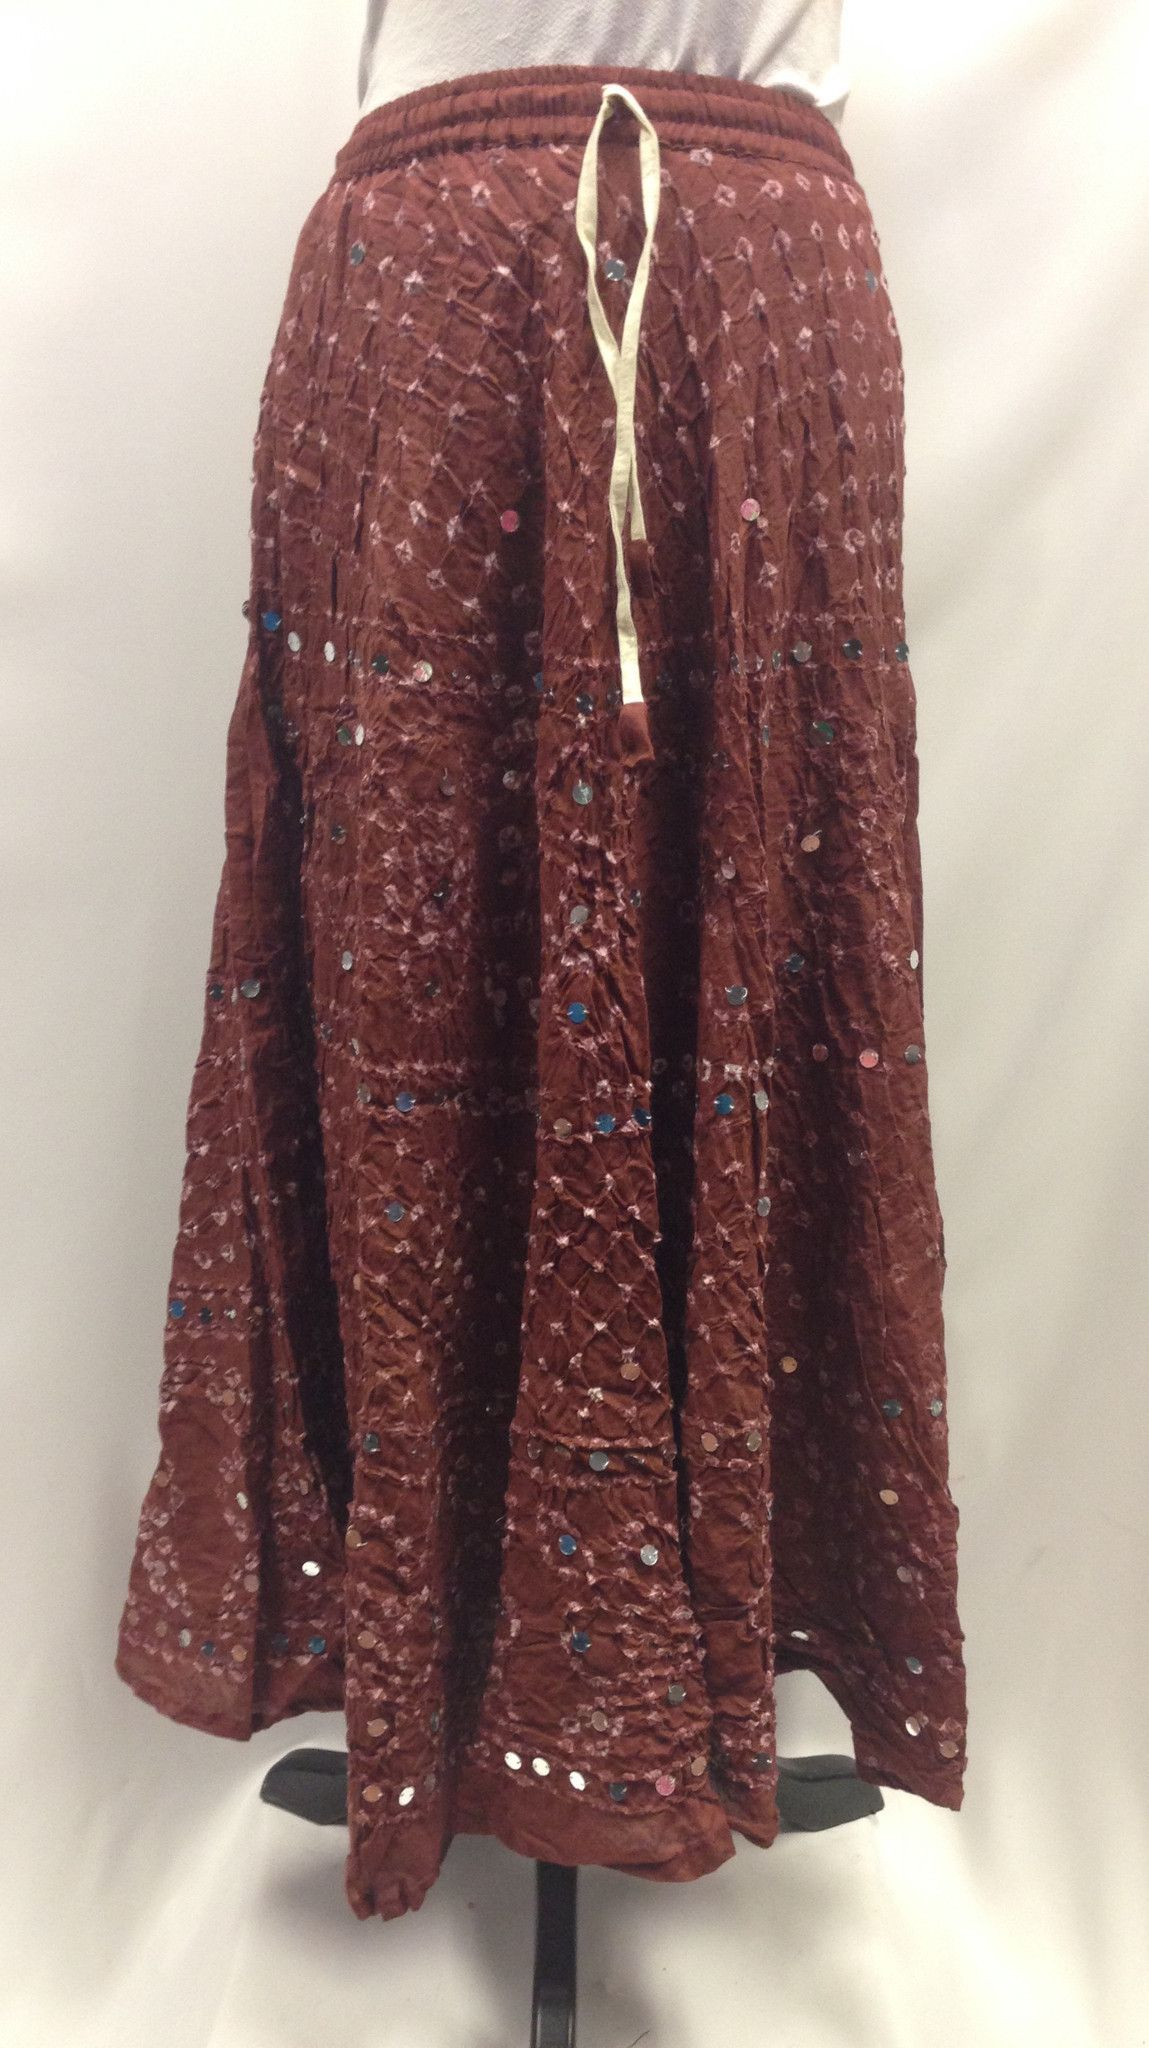 e8db76ec0 Bandhani Brown Skirt | Indian clothes | Brown skirts, Skirts, Indian ...